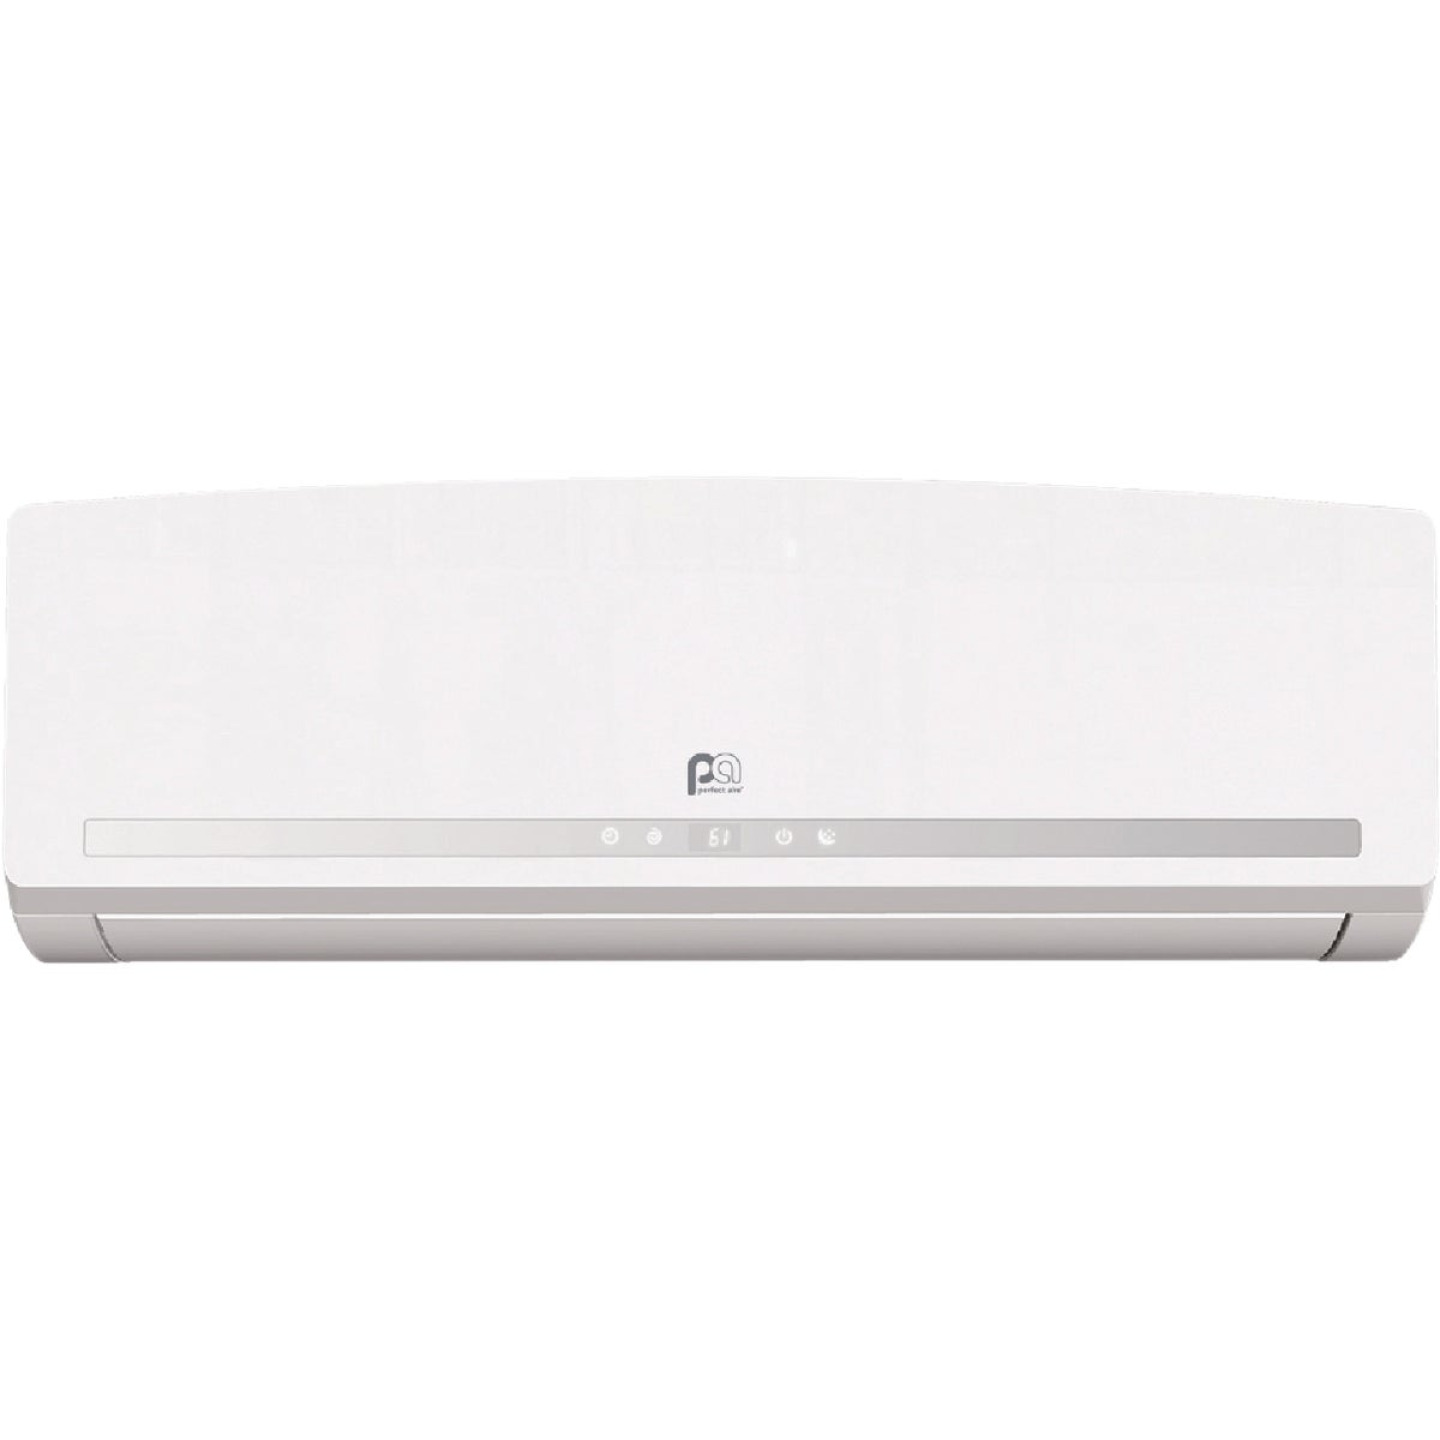 Perfect Aire Quick Connect 18,000 BTU 750 Sq. Ft. Mini-Split Room Air Conditioner with Heating Mode Image 2